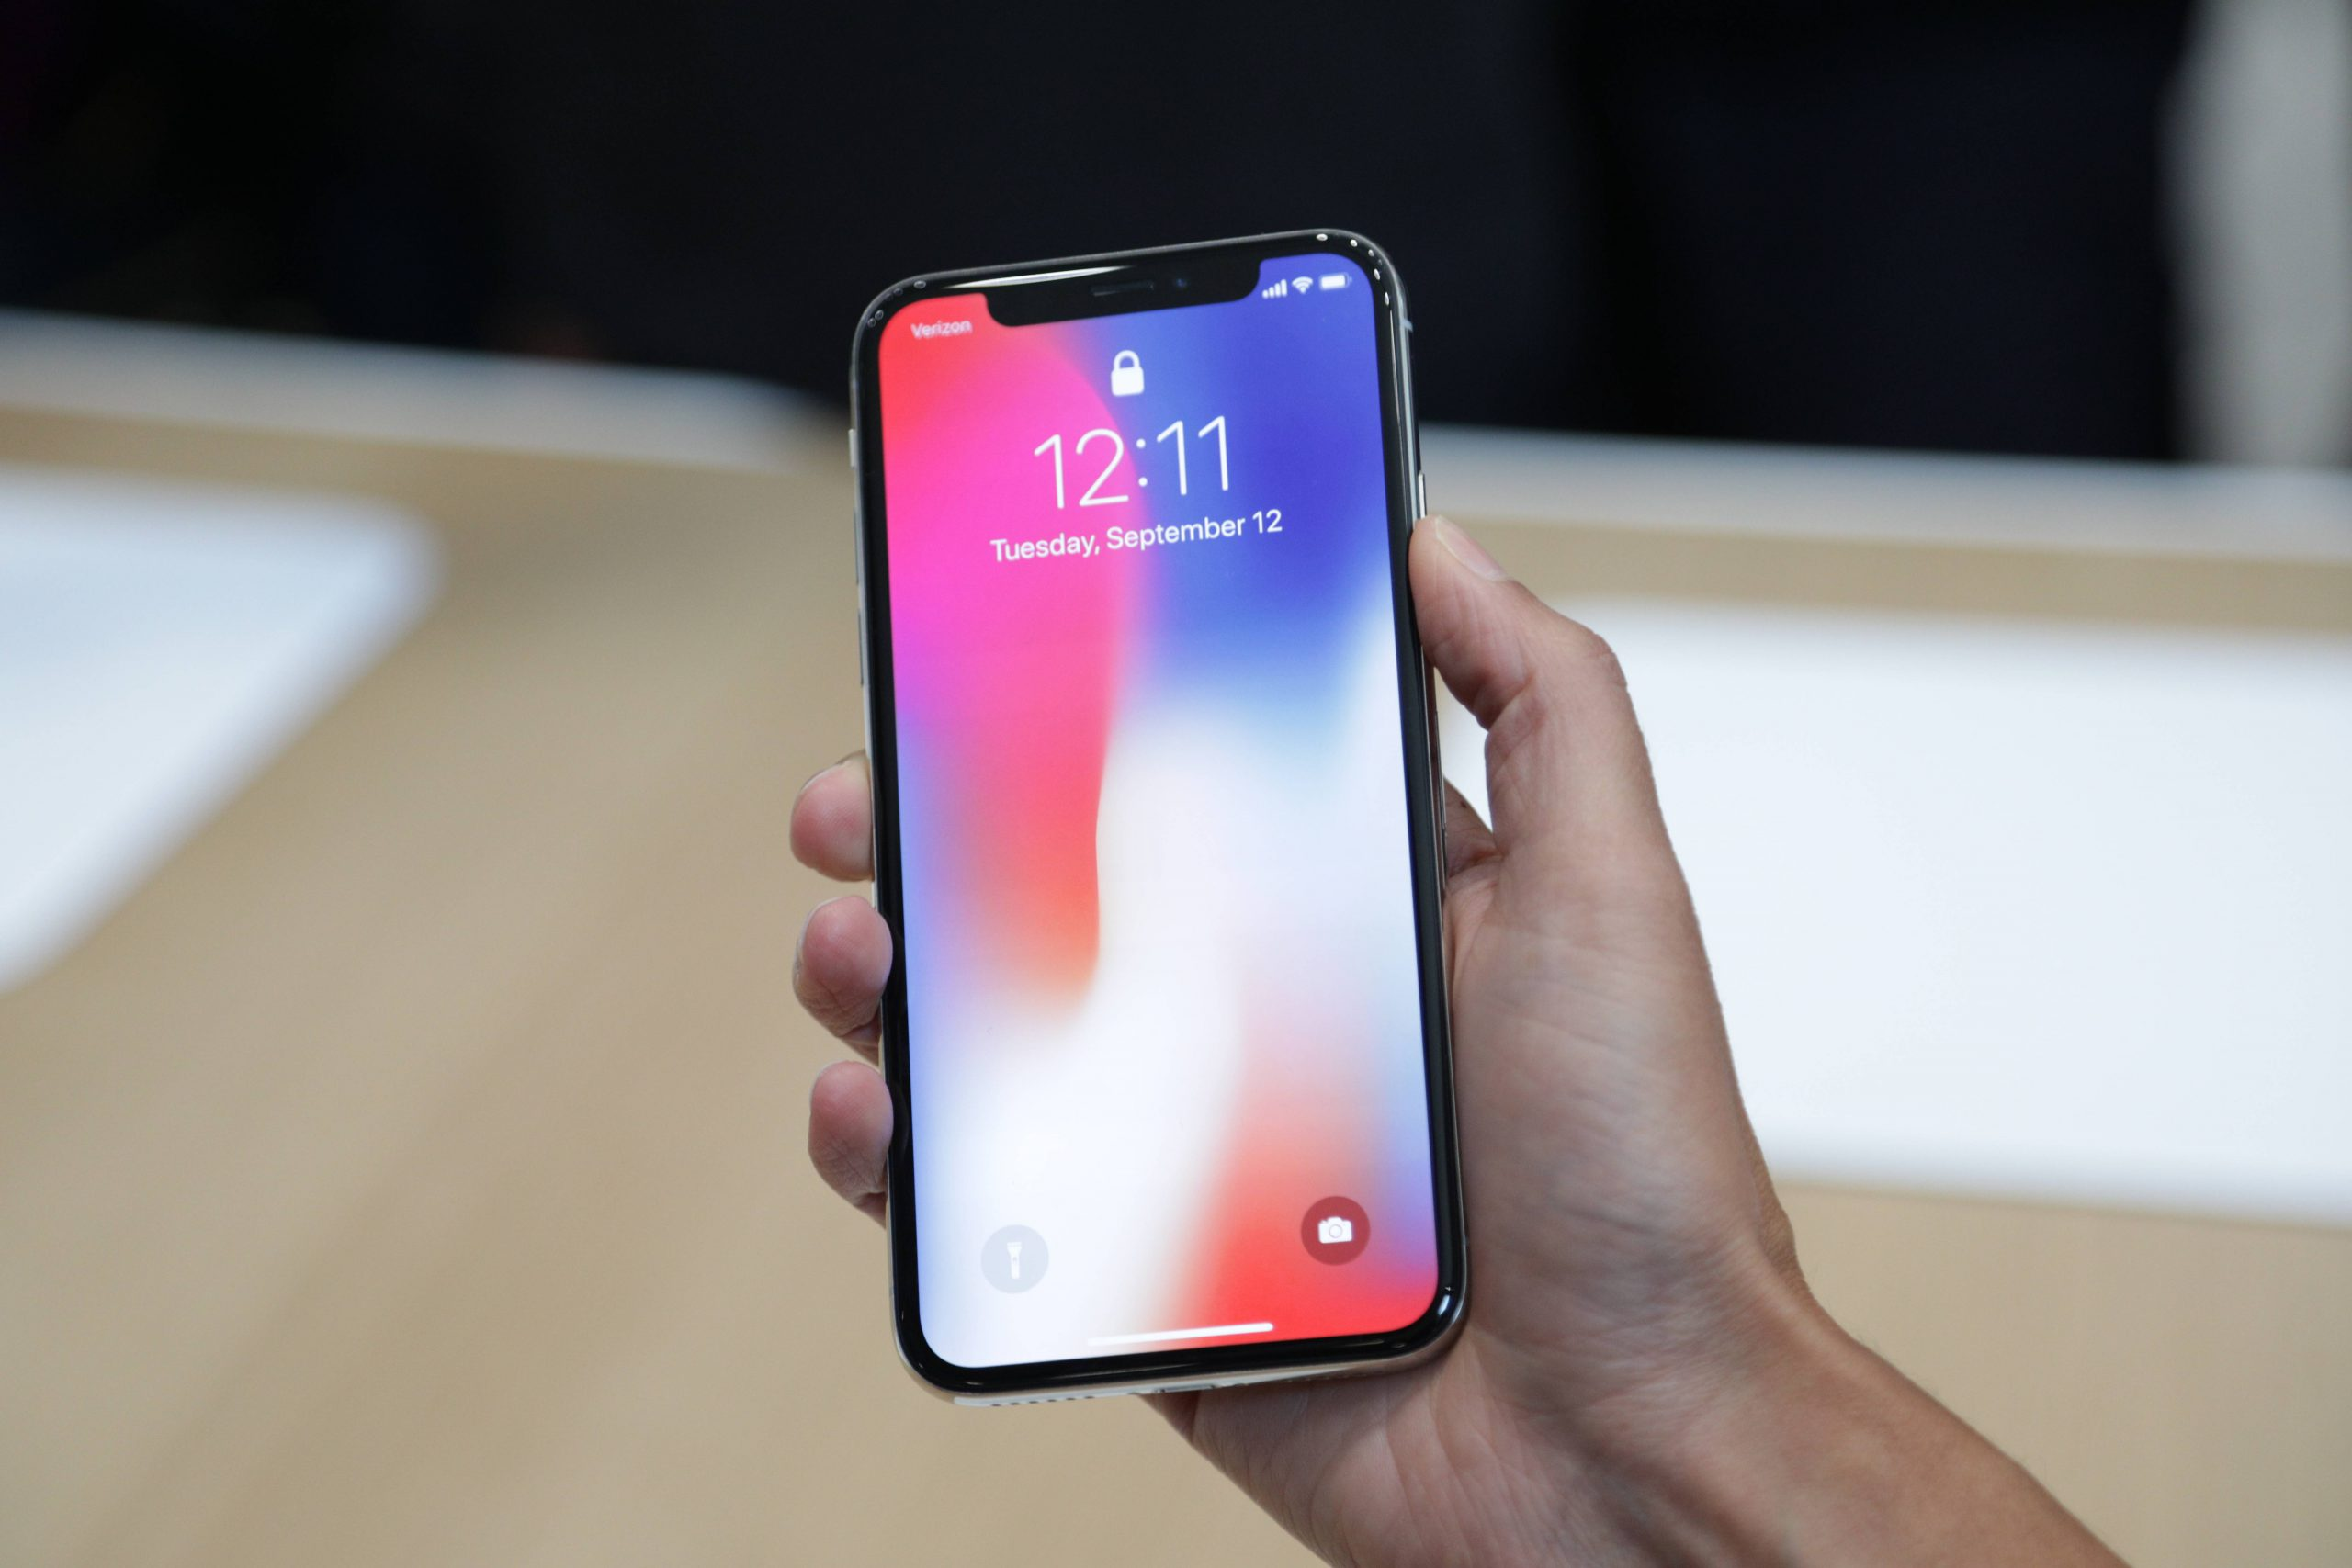 iPhone X – A New Generation of High Tech